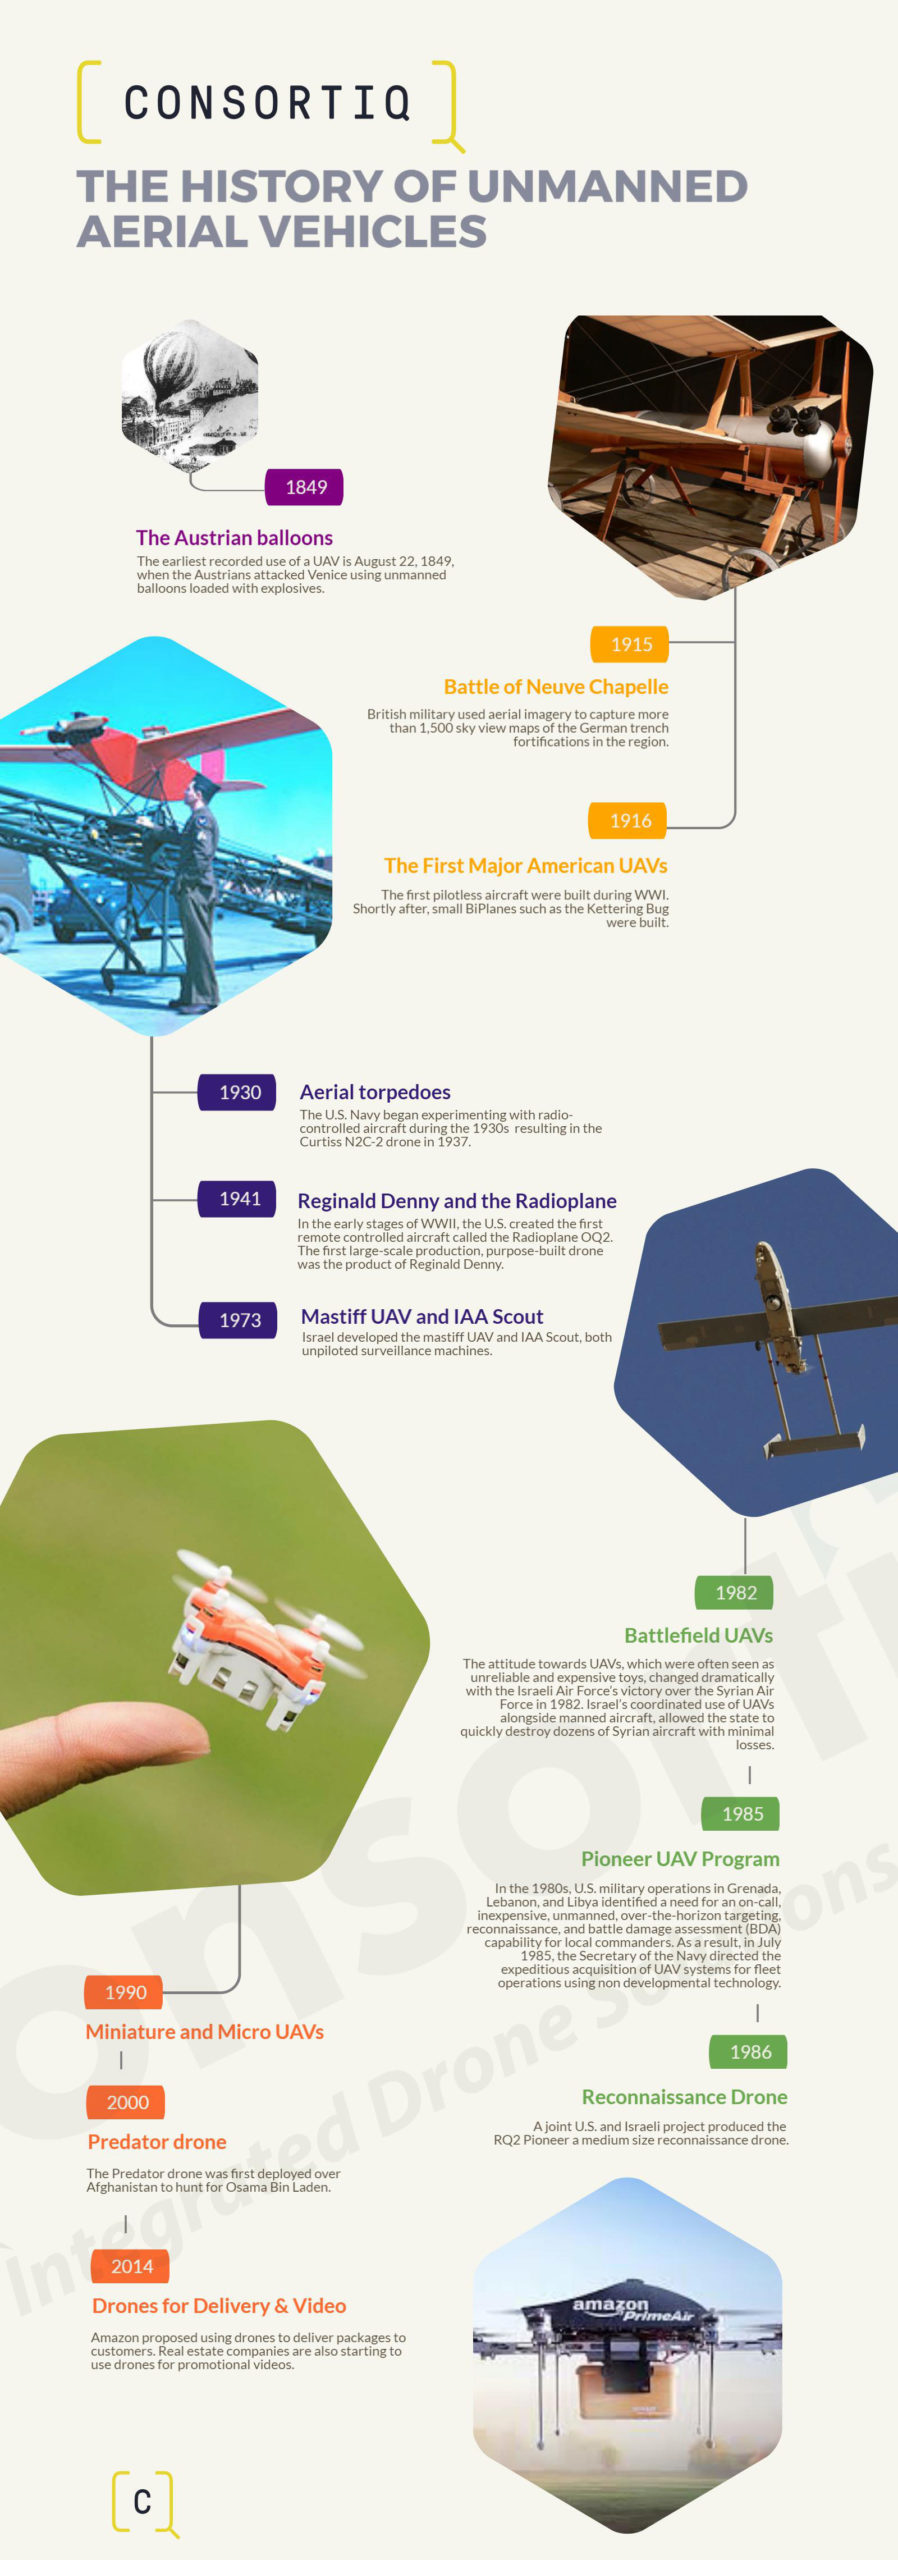 History of Unmanned Aerial Vehicles - Consortiq